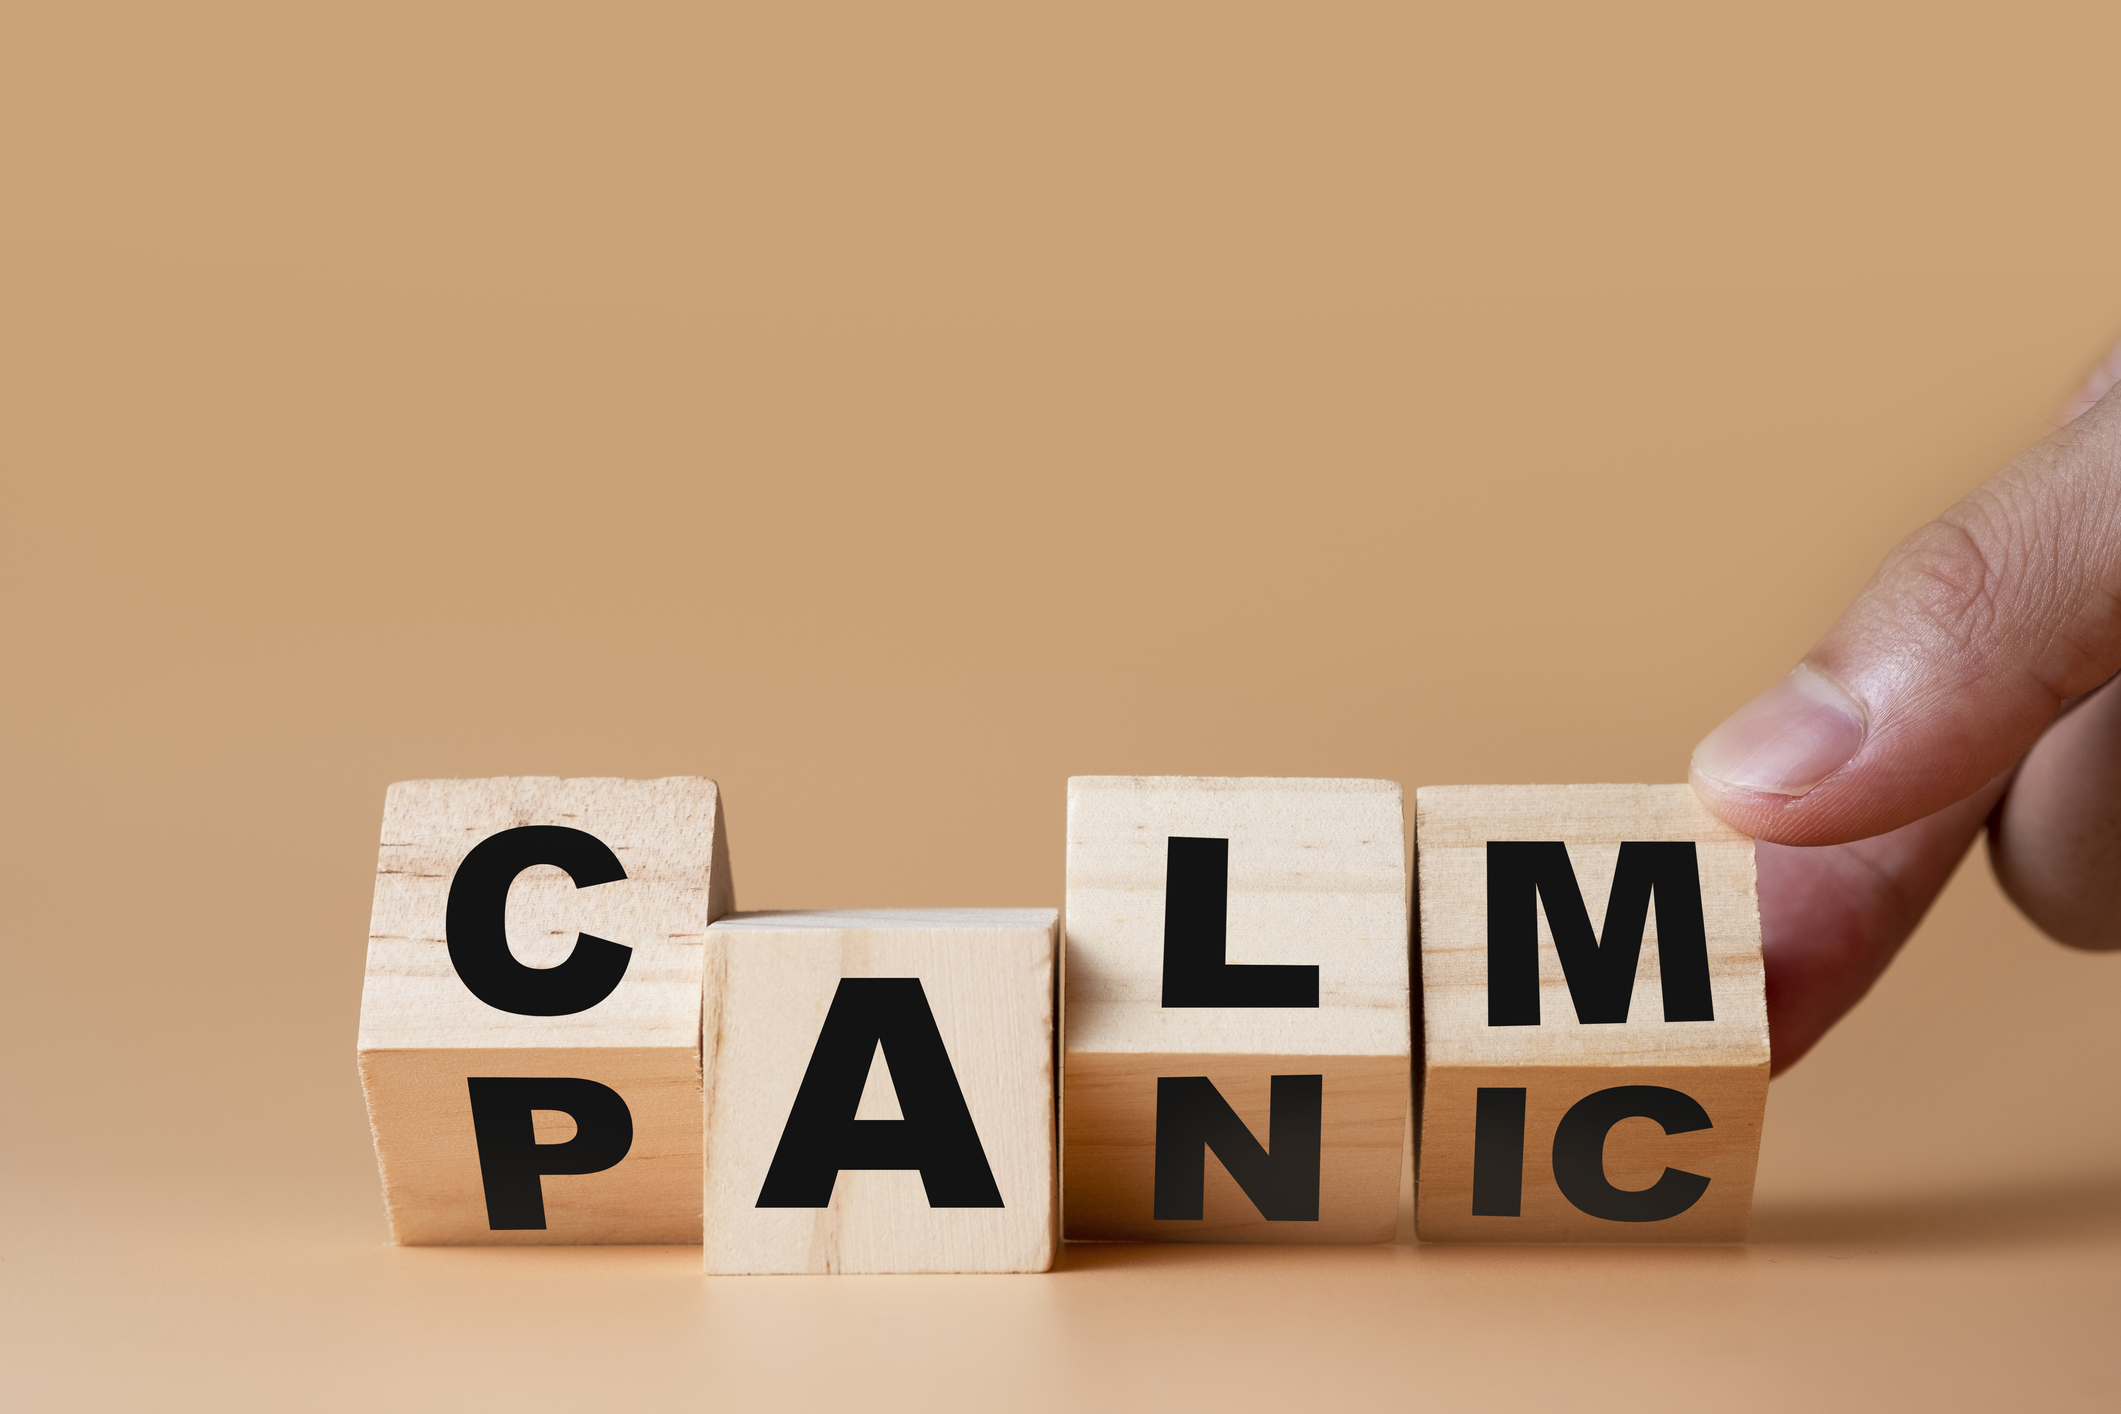 """Hand flipping wooden cubes for change wording"""" Panic """"  to """" Calm"""".  Mindset is important for human development."""